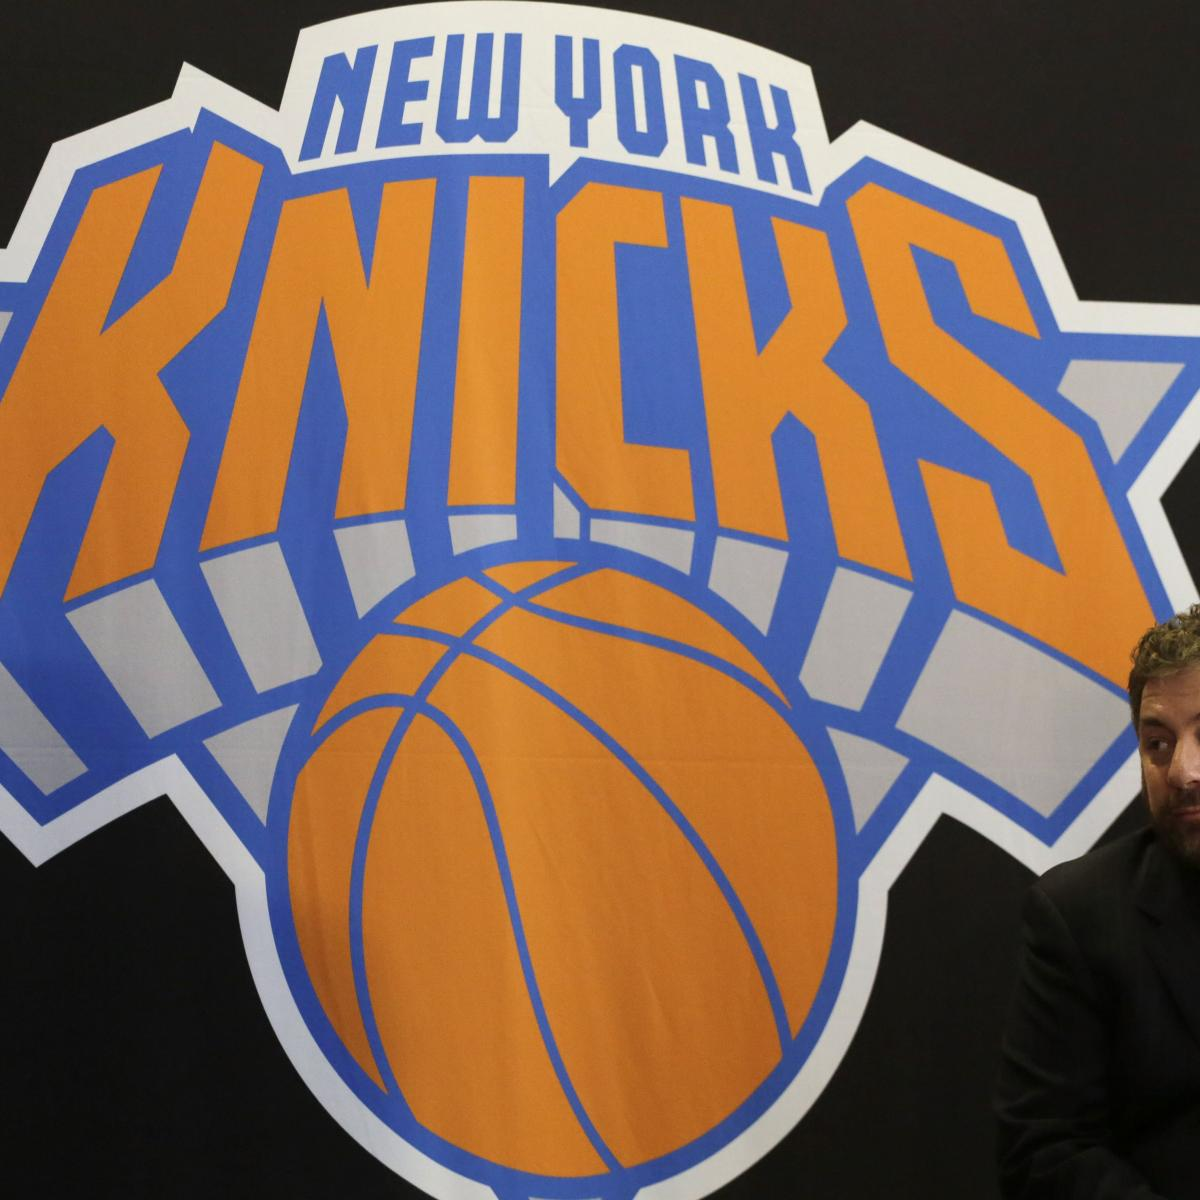 Nuggets Clippers Highlights: Report: High-Profile NBA Players 'Encouraged' By Knicks